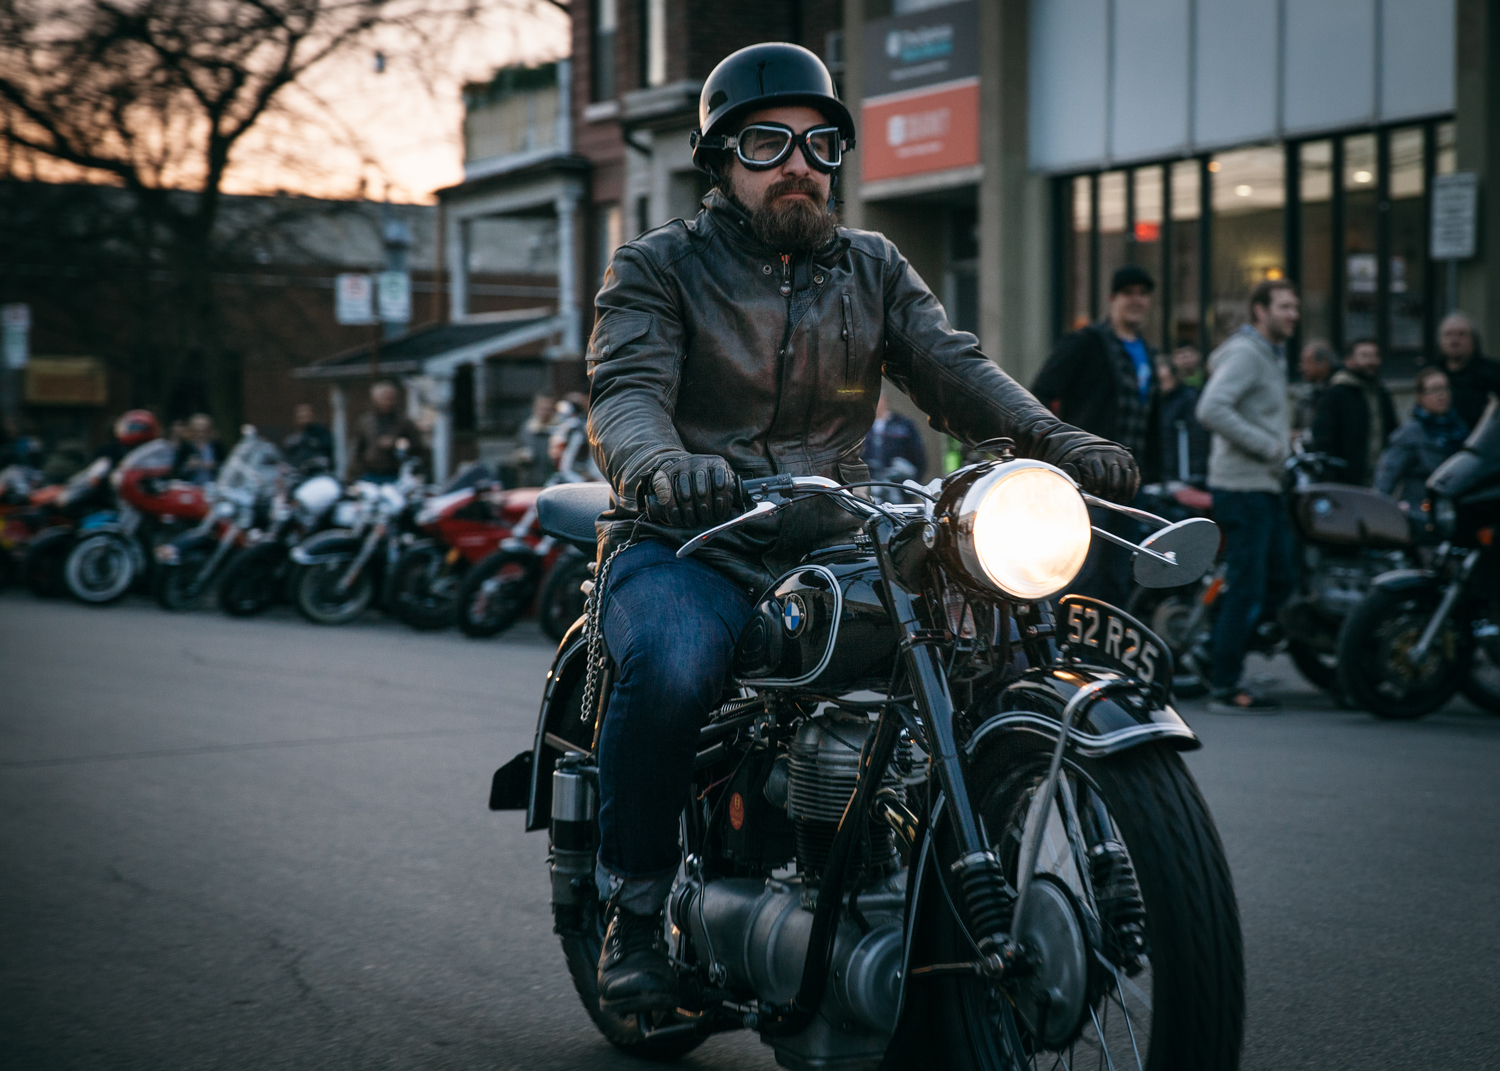 Allan Glanfield - #TheMotoSocialTORONTO-May 4-2016-14.jpg